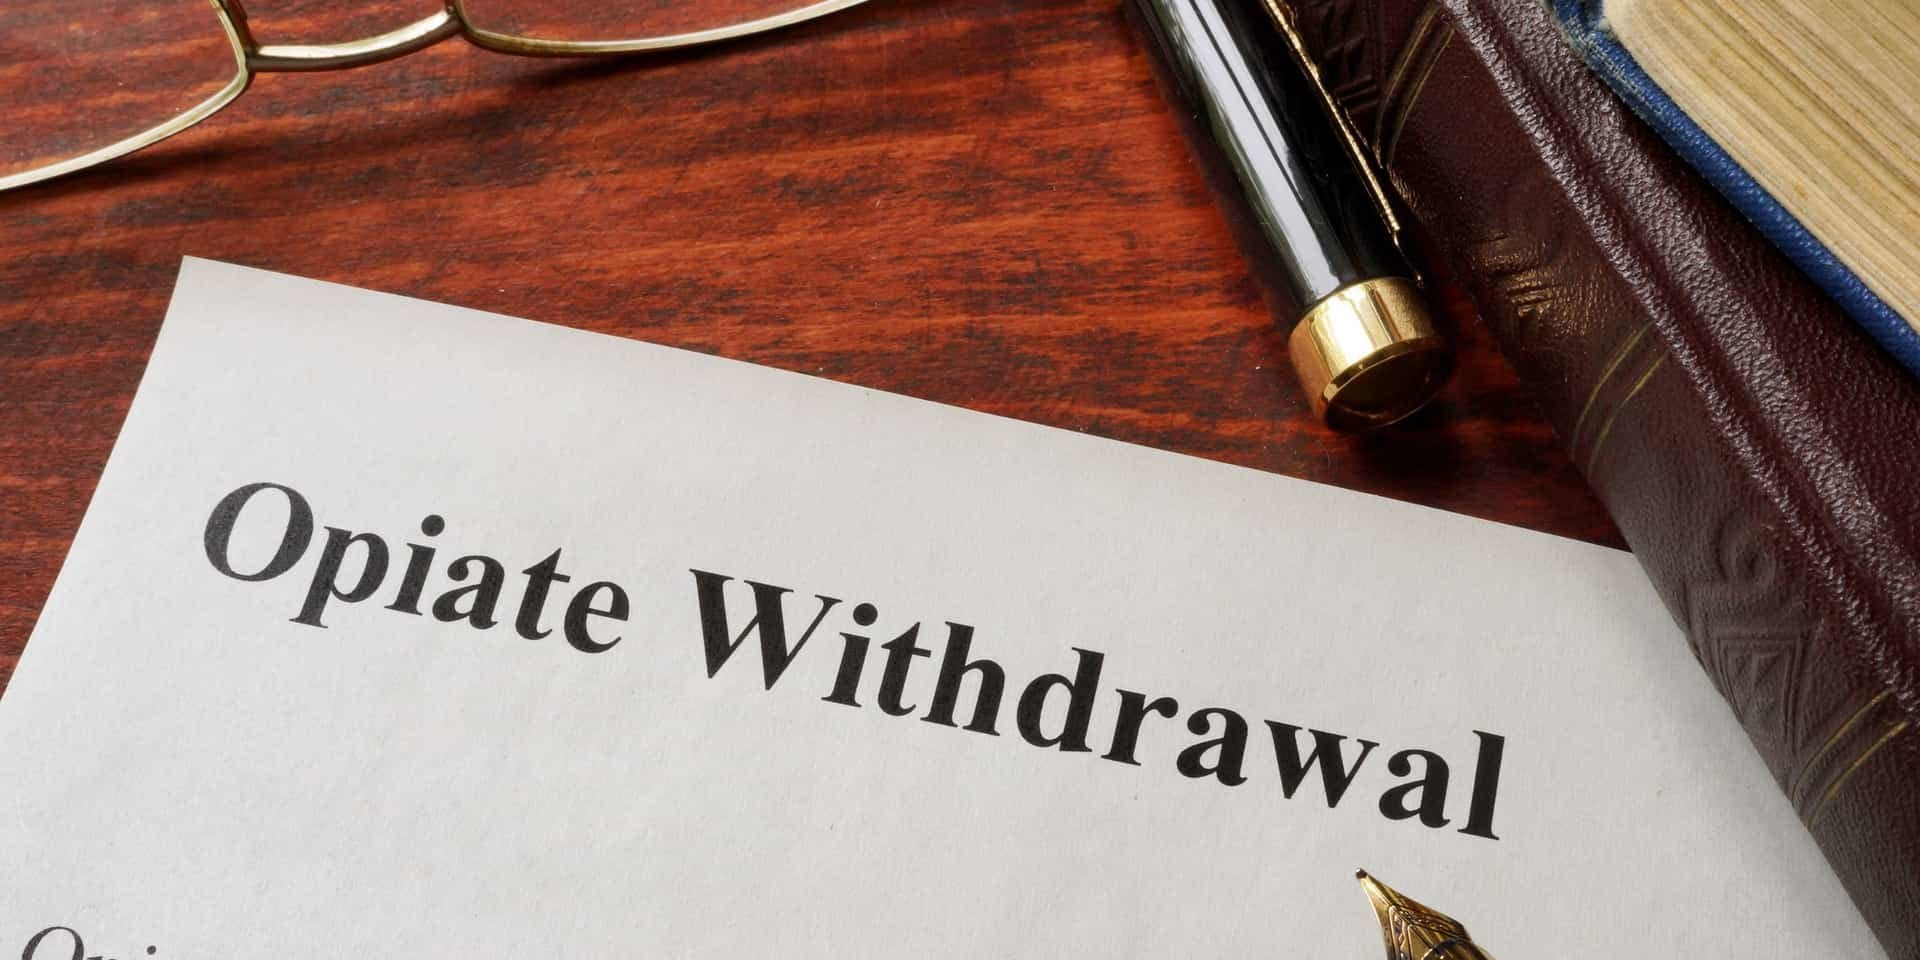 Best Kratom Strains For Opiate High&Withdrawal - lpath